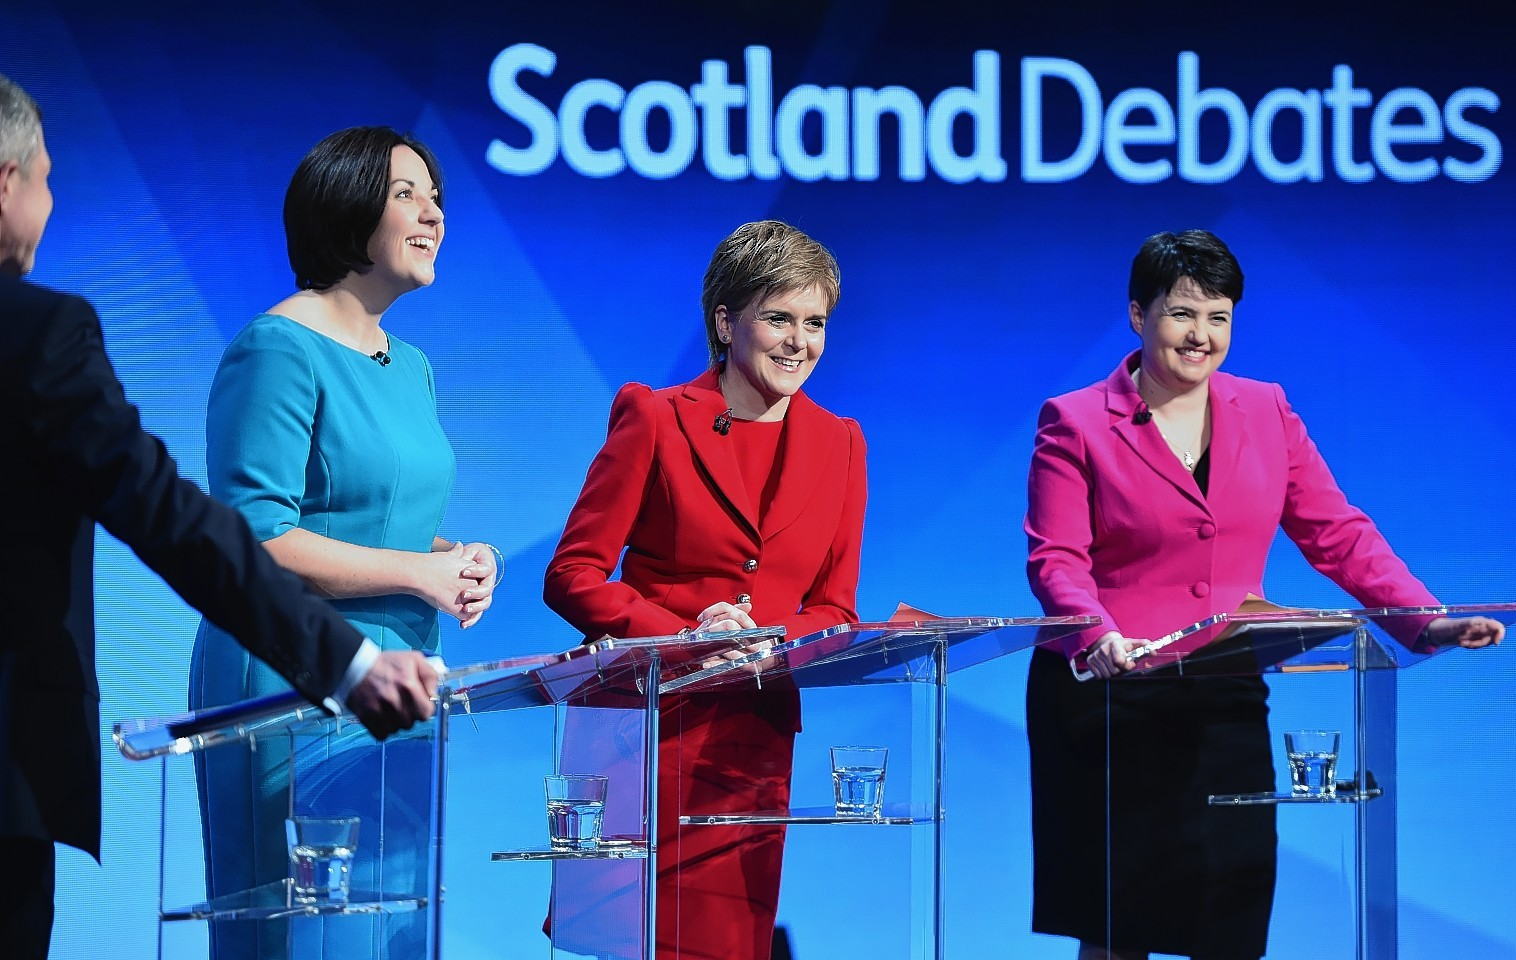 The main party leaders ahead of the Scottish election